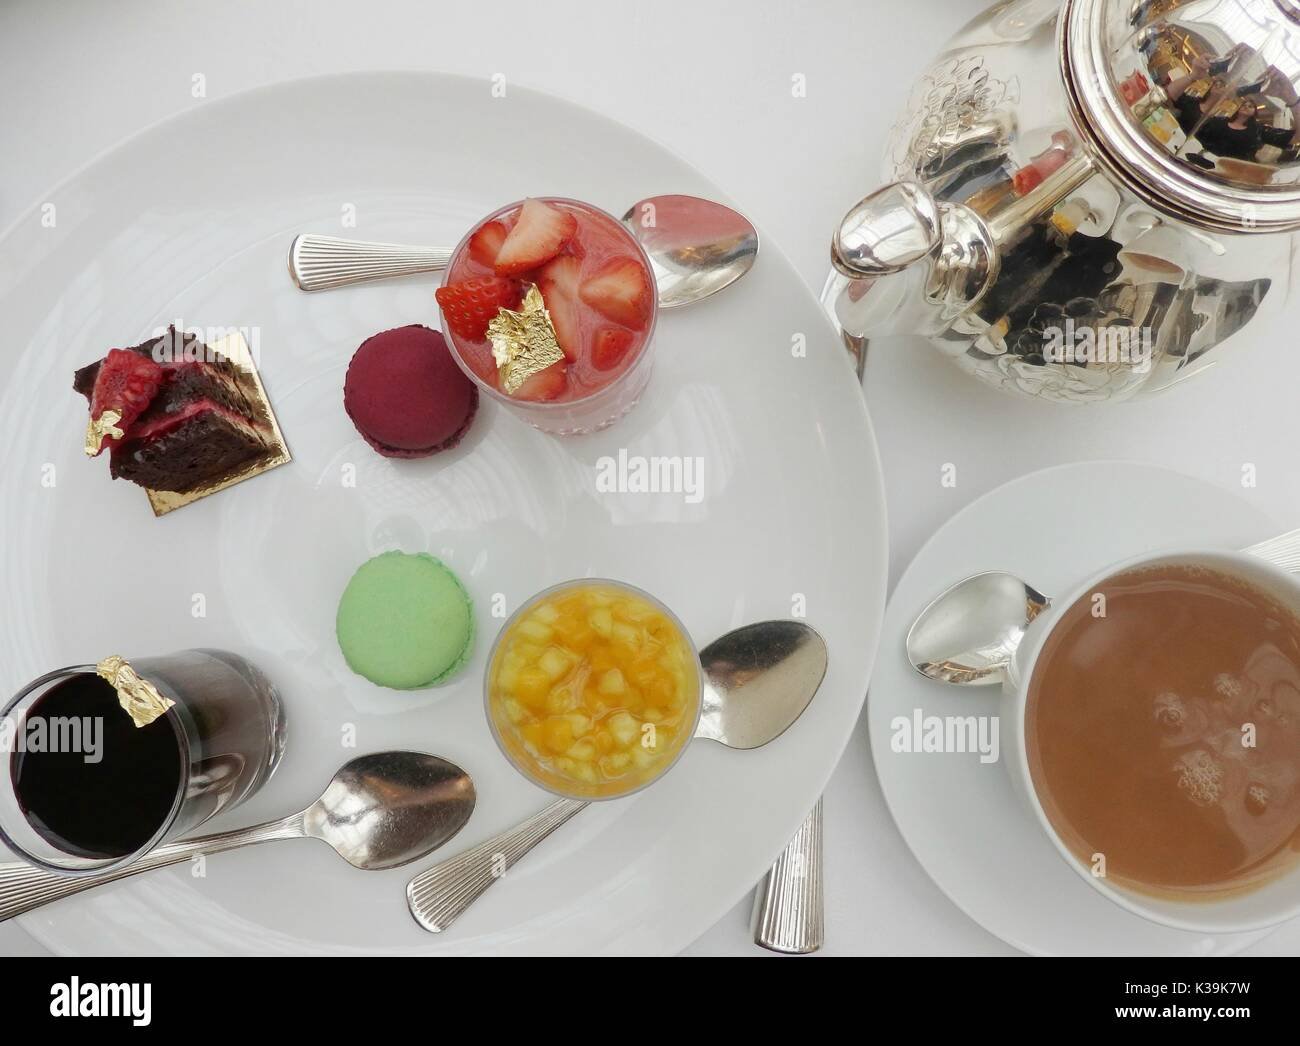 Afternoon Tea at The Lanesborough in Park Lane, London, England - Stock Image